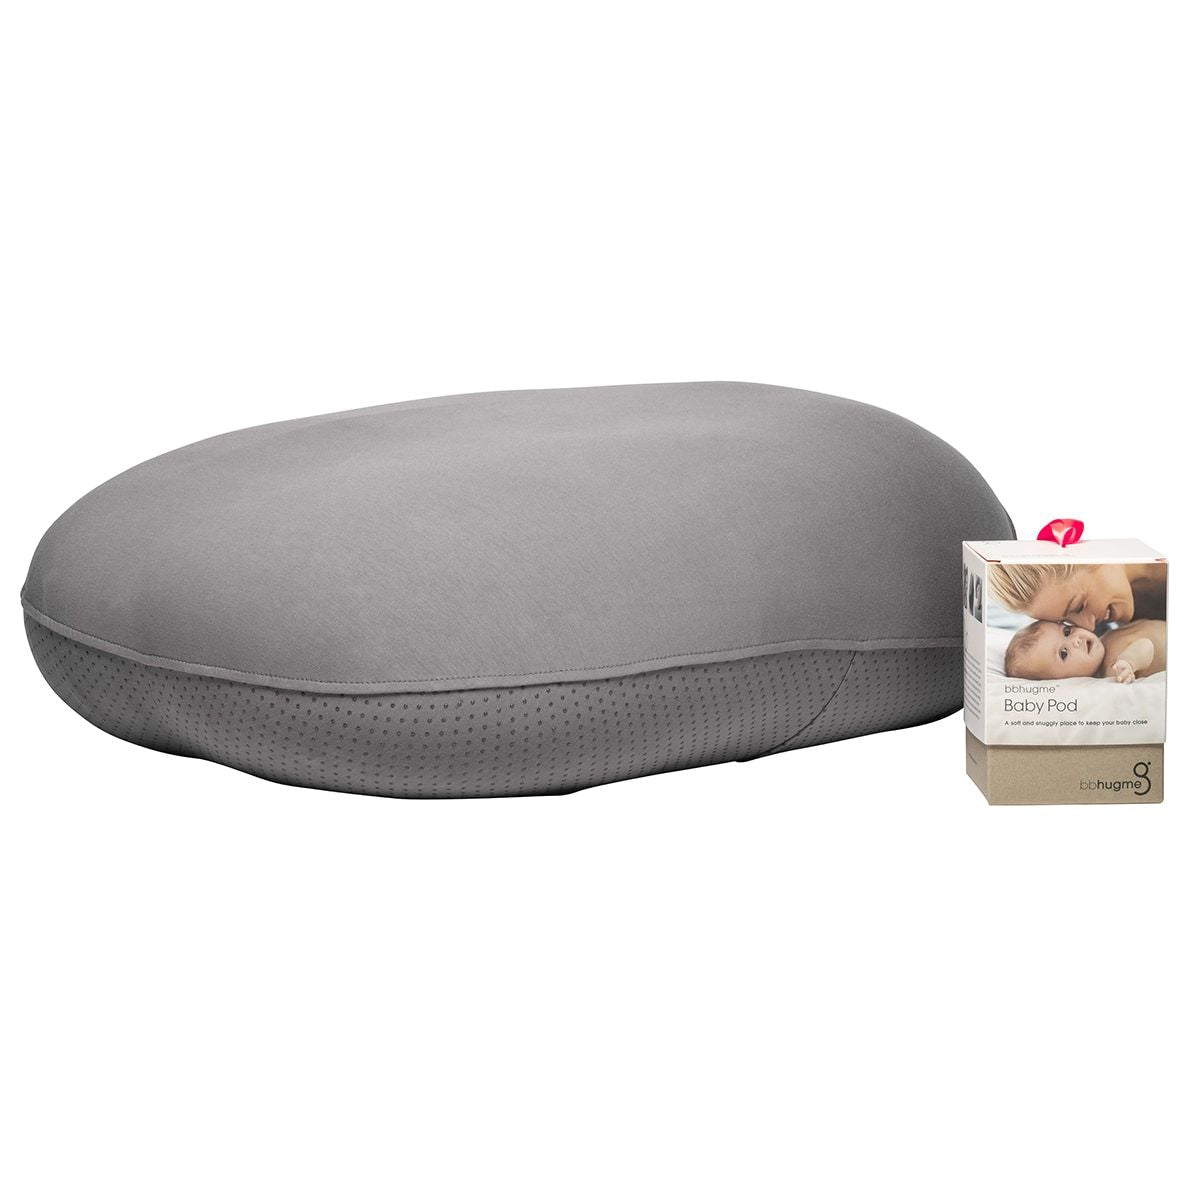 bbhugme Baby pod/cover til Graviditetspude & ammepude, Stone